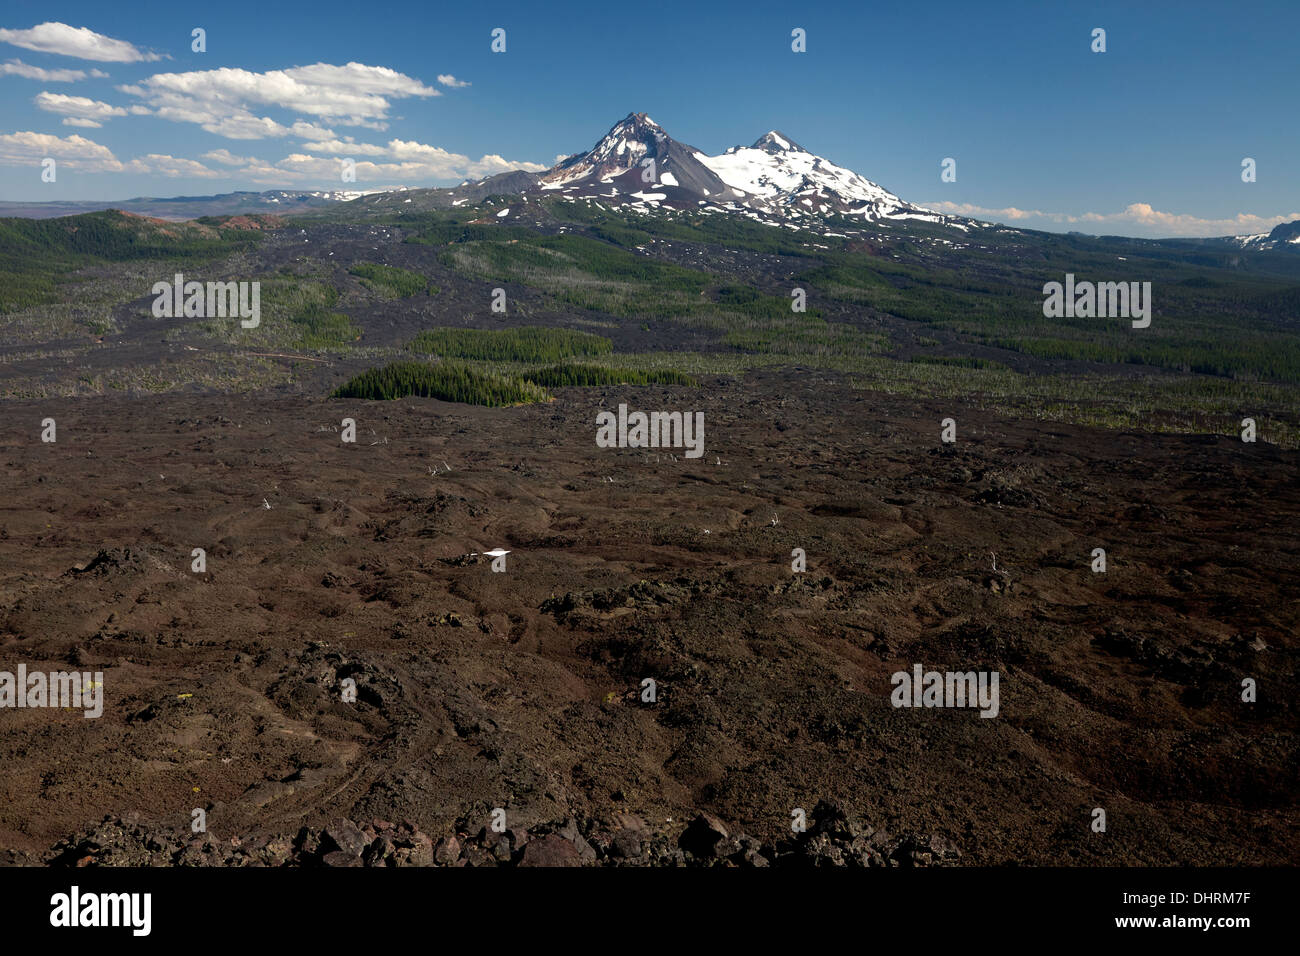 The Lava Flow north of McKenzie Pass and the North and Middle Sisters from the summit of Little Belknap Crater near the PCT. - Stock Image